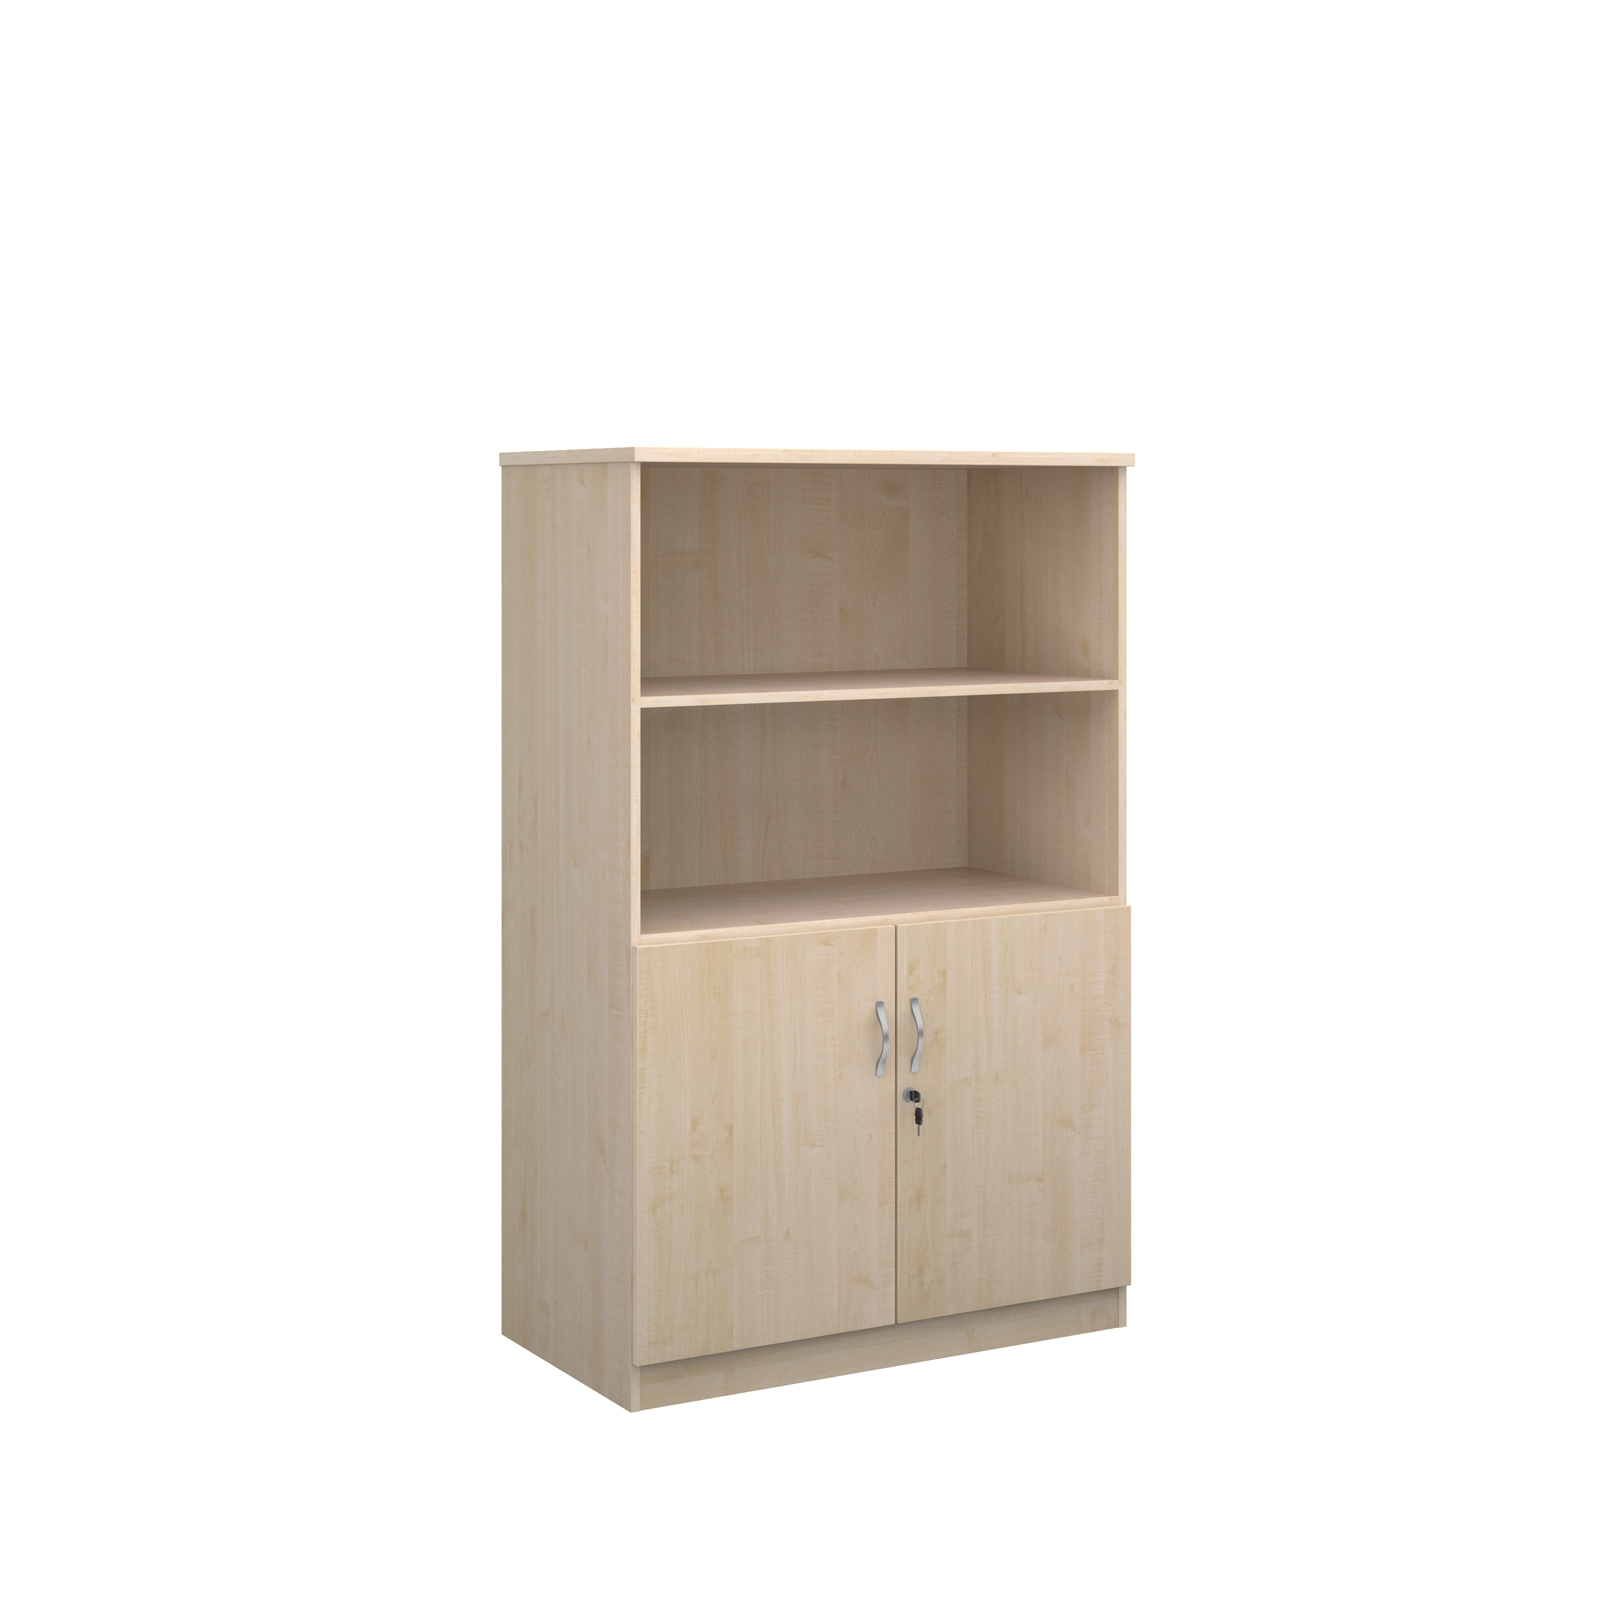 1600mm high deluxe combination bookcase with wood doors and open tops